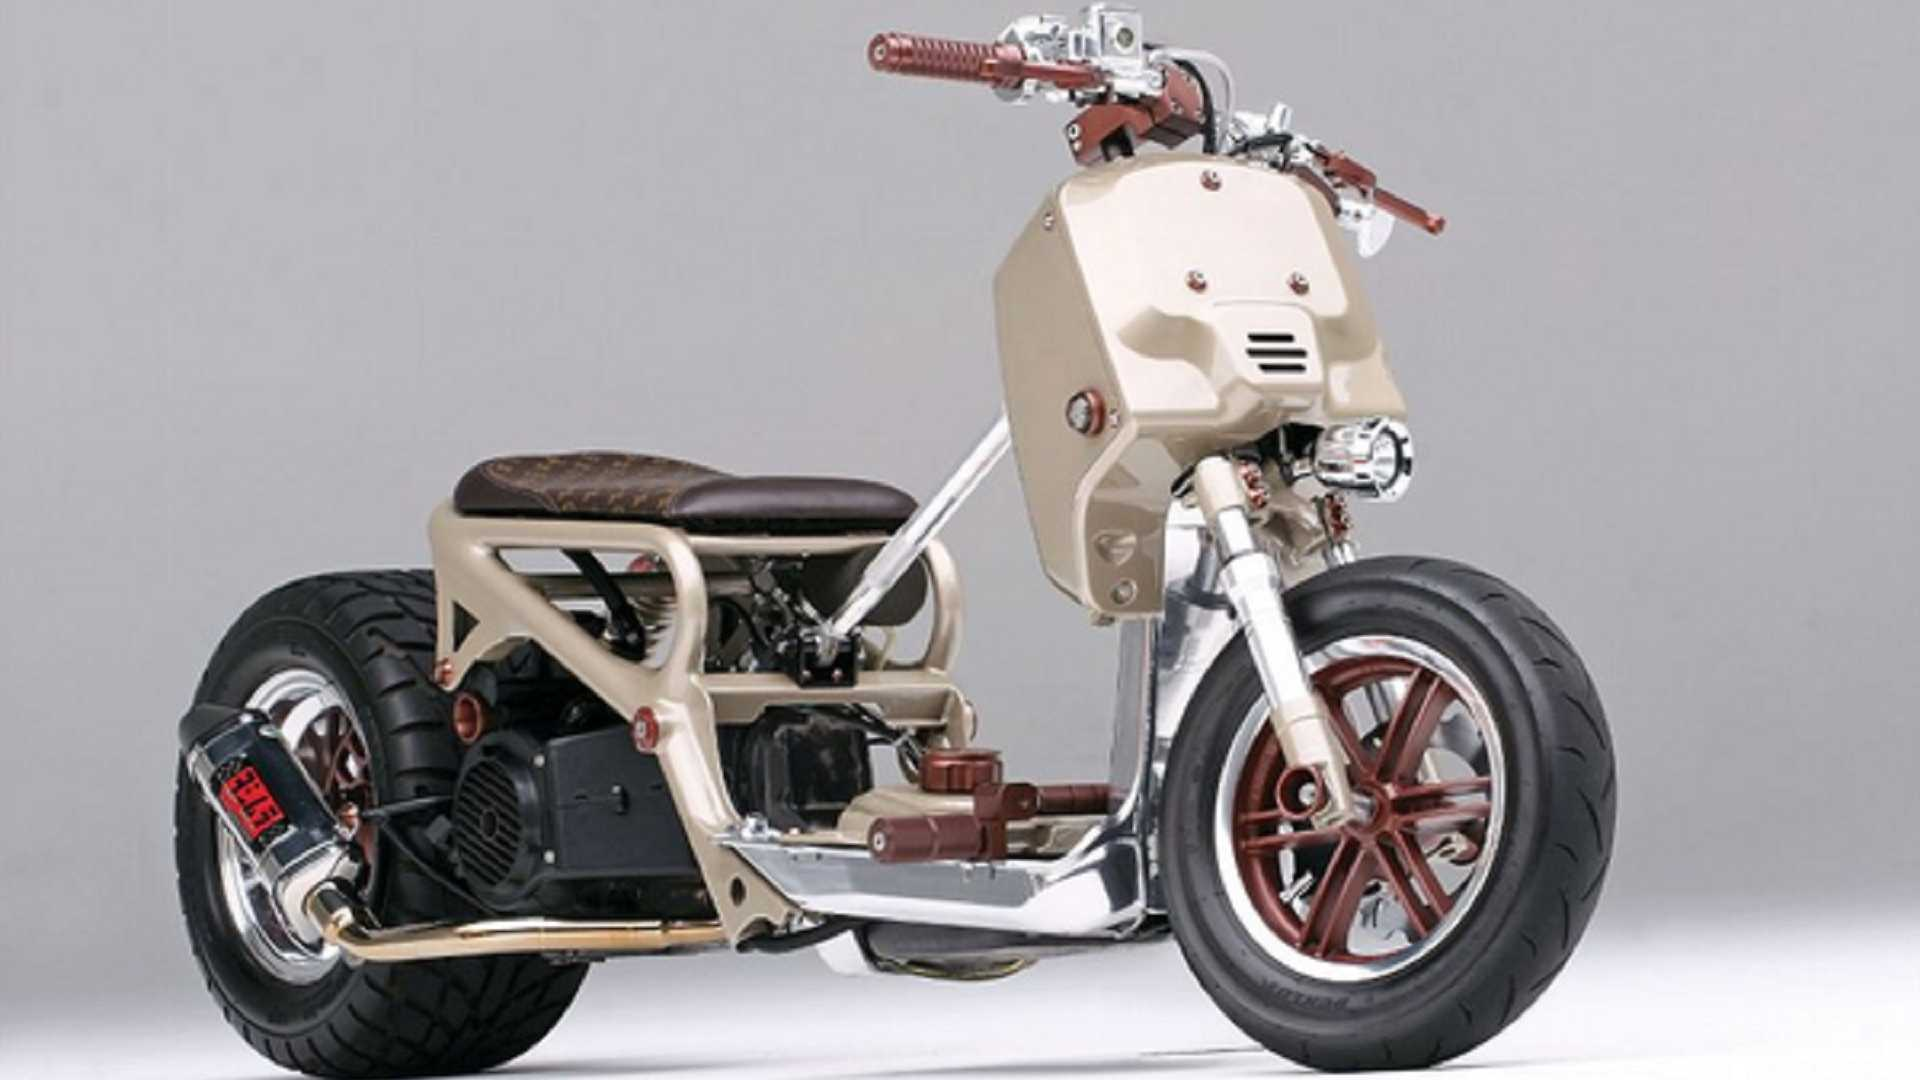 Motorcycle News, Reviews and How-Tos for Enthusiasts | RideApart